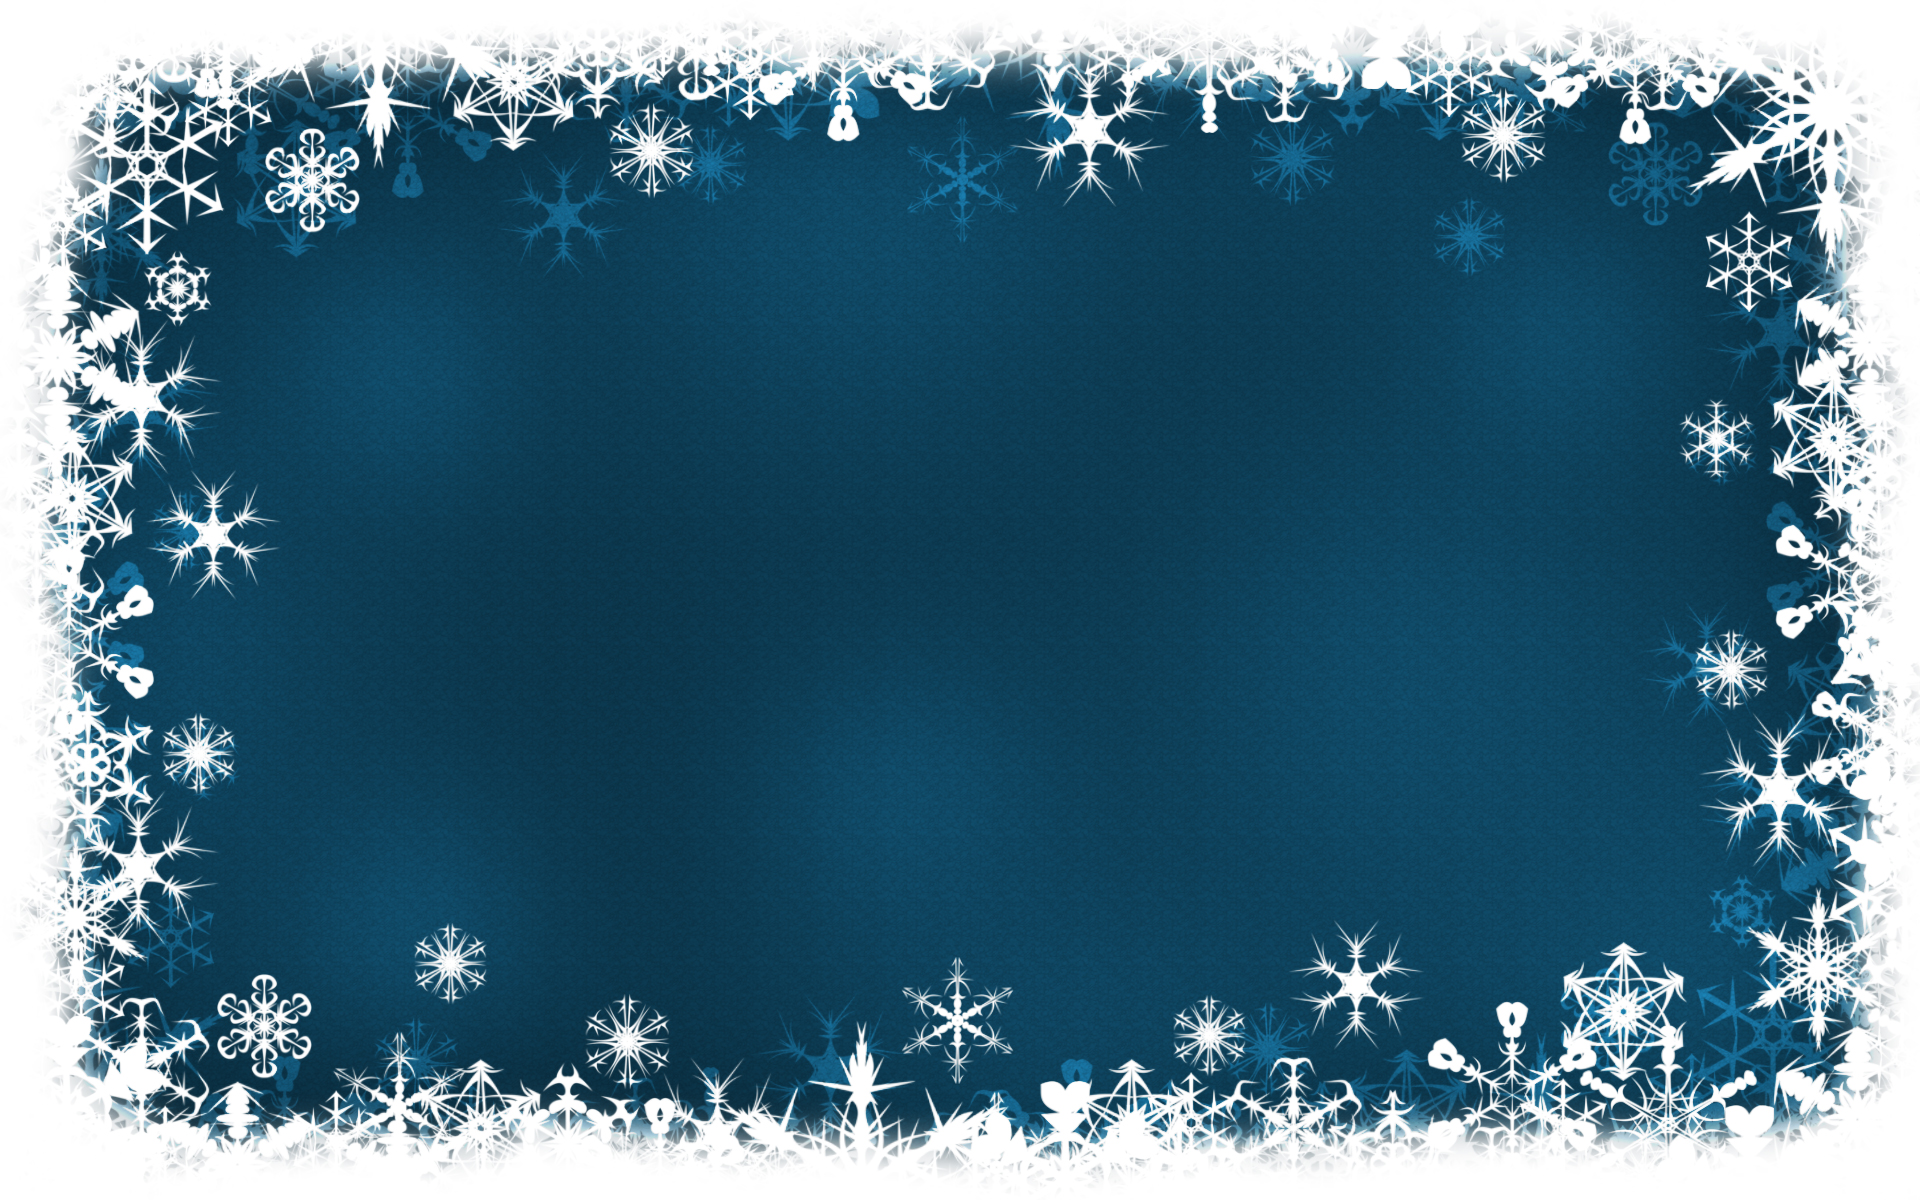 Christmas Backgrounds wallpaper   741521 1920x1200